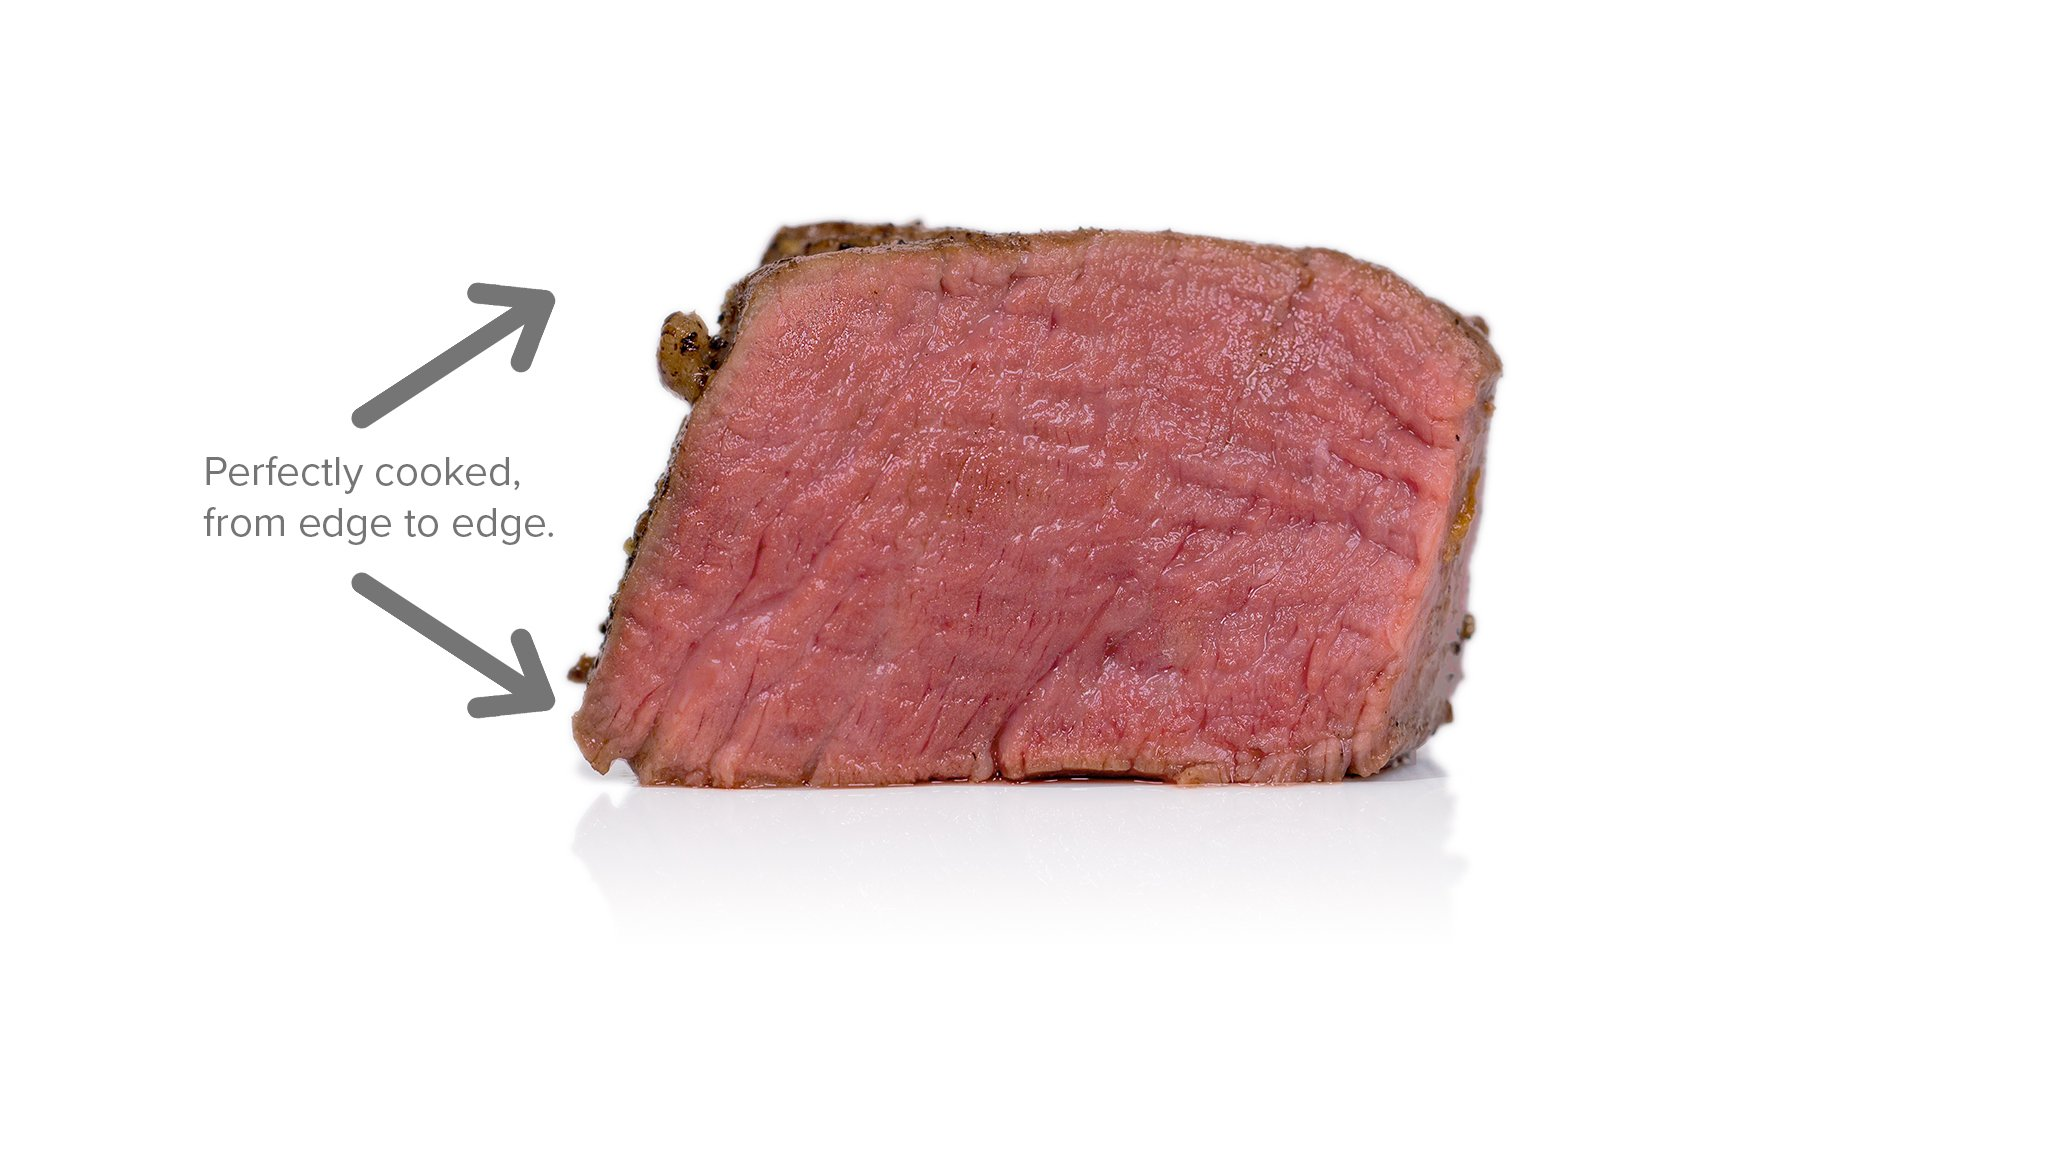 Anova-Food-Examples_10_steak_text